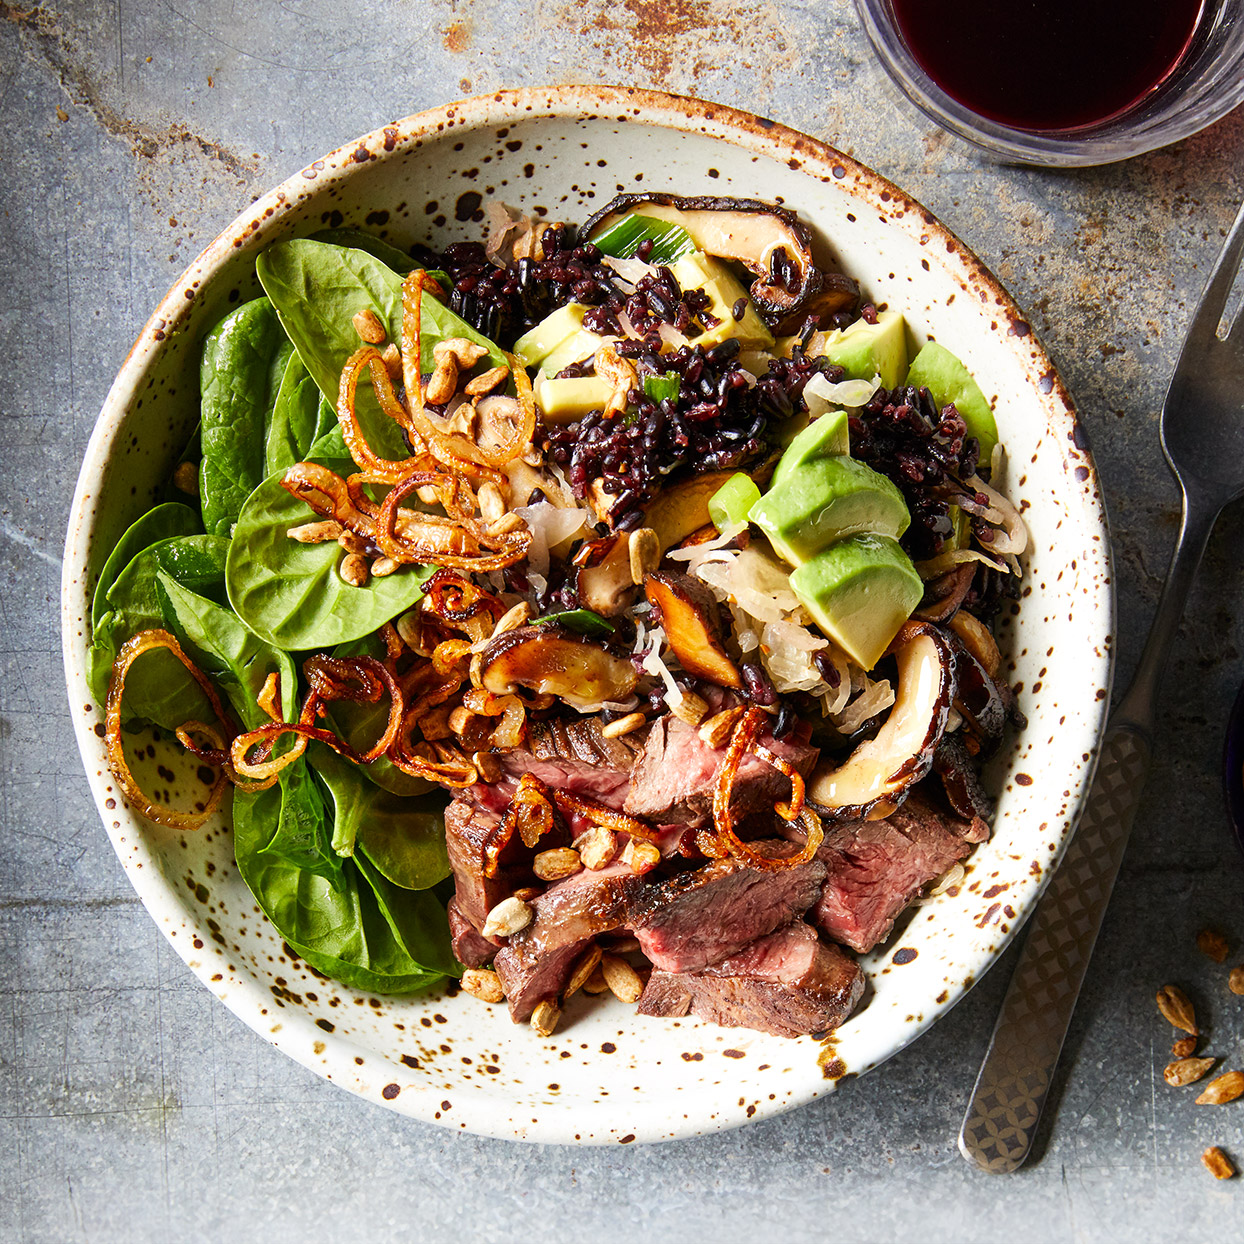 This steak salad doesn't feature a typical dressing, but tangy kimchi, savory pan-fried shallots and lemon juice pack it with flavor. Forbidden rice helps add more color and nutrition to this tangy dish.